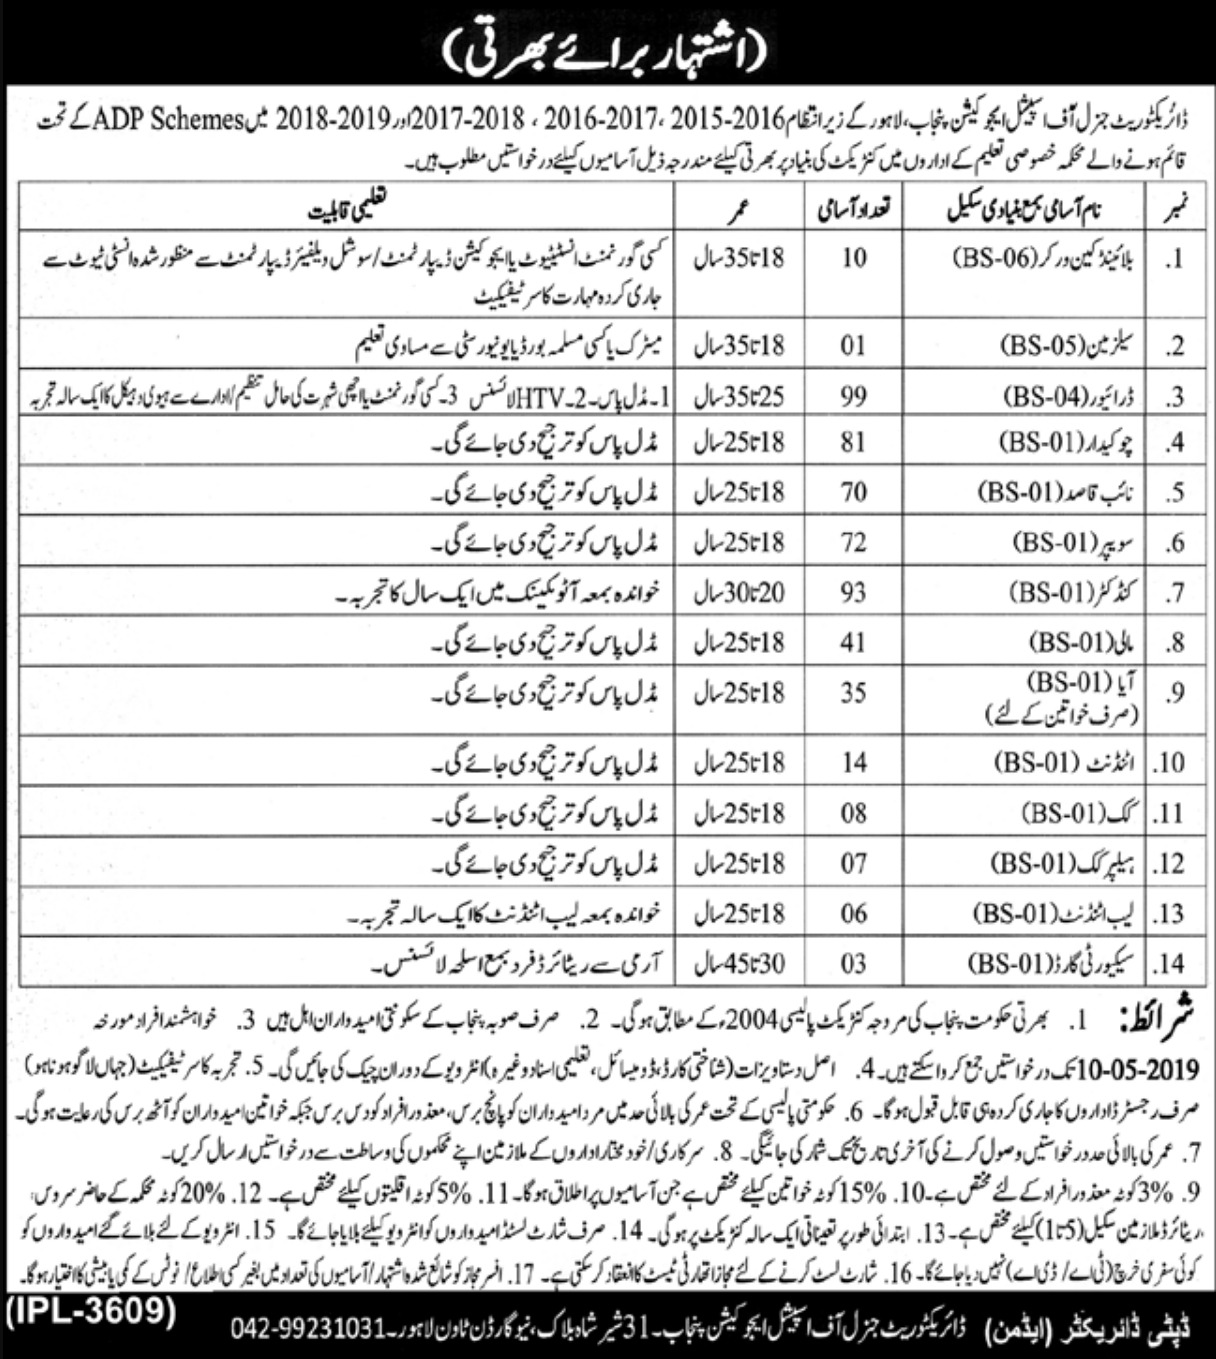 Directorate General of Special Education Punjab Lahore Jobs 2019 Latest